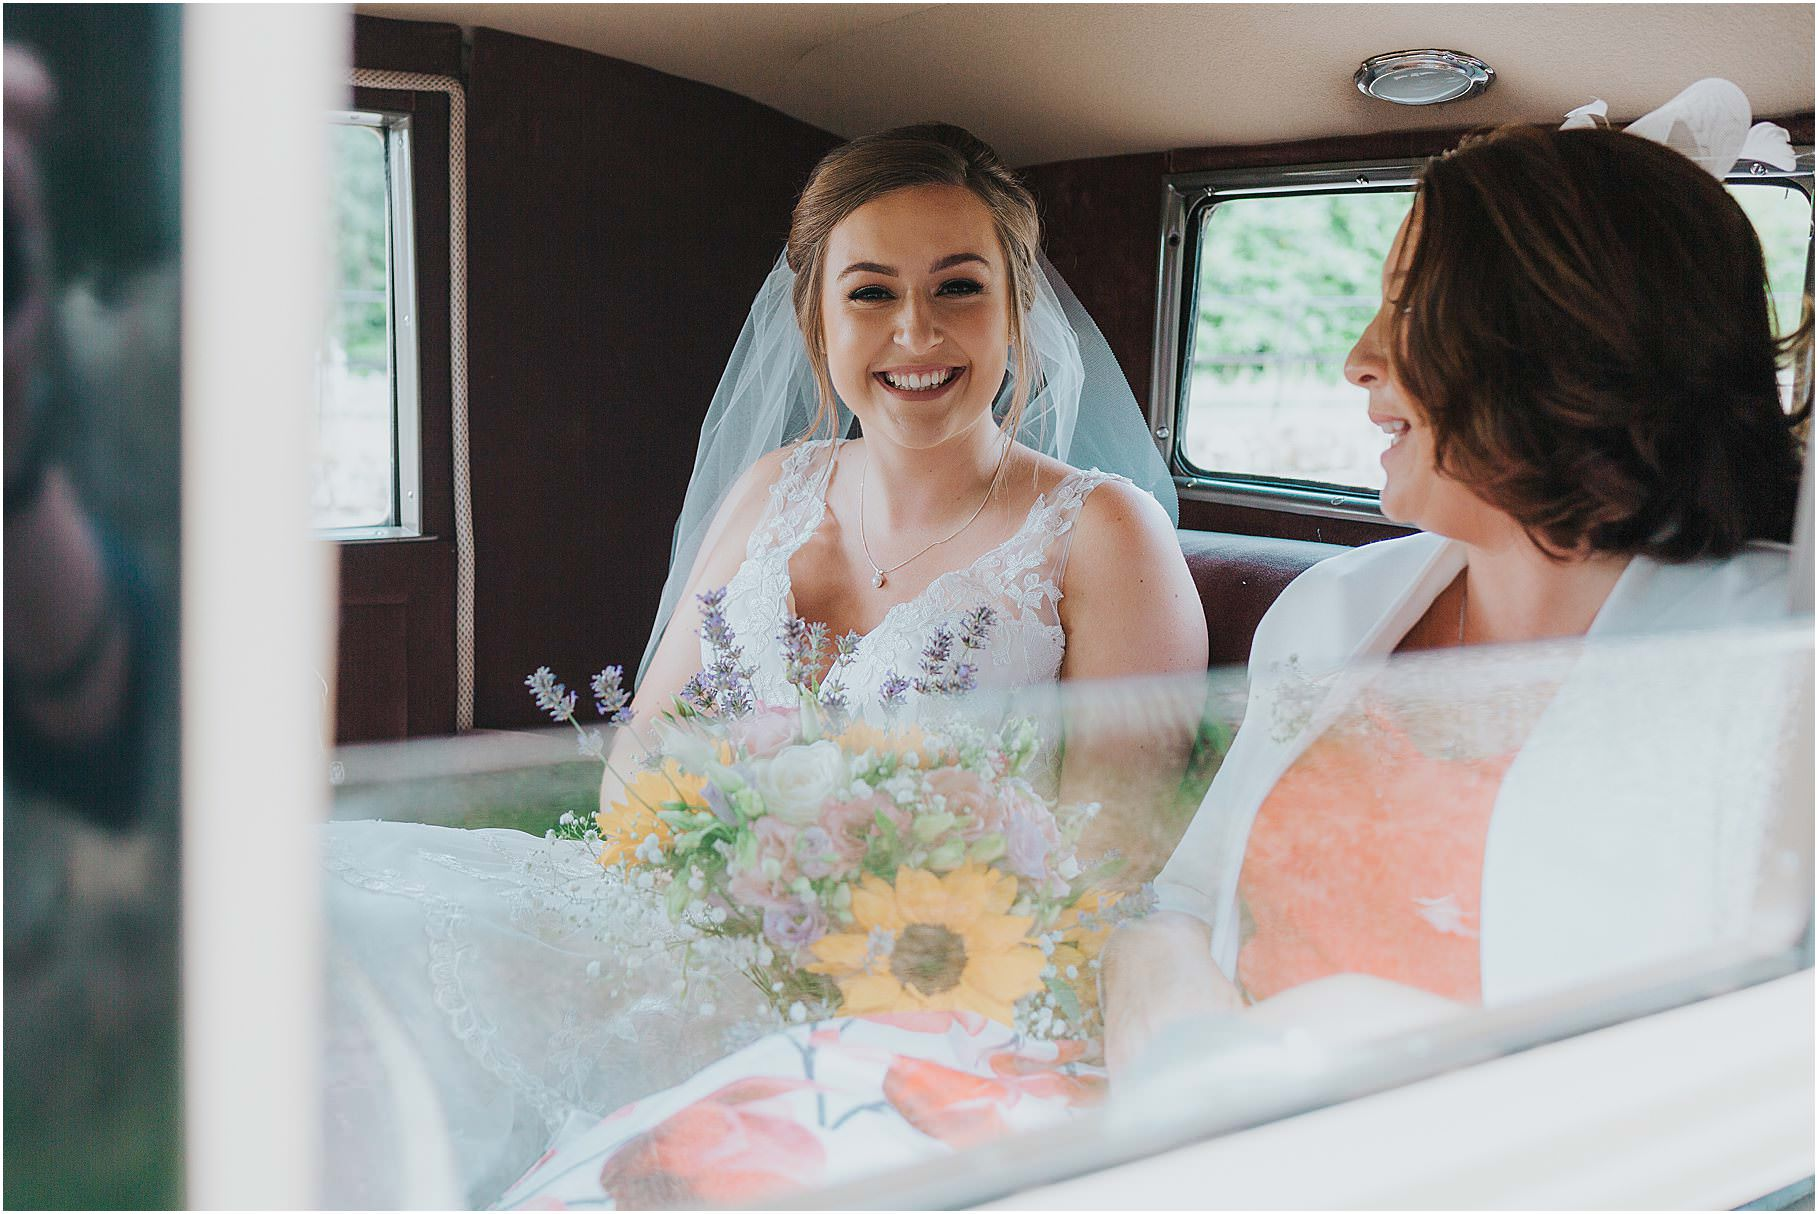 Rutland Weddings Exton Hall Exton Oakham Rutland Water Photographer 1040 - Mr and Mrs Barker // RUTLAND WEDDING